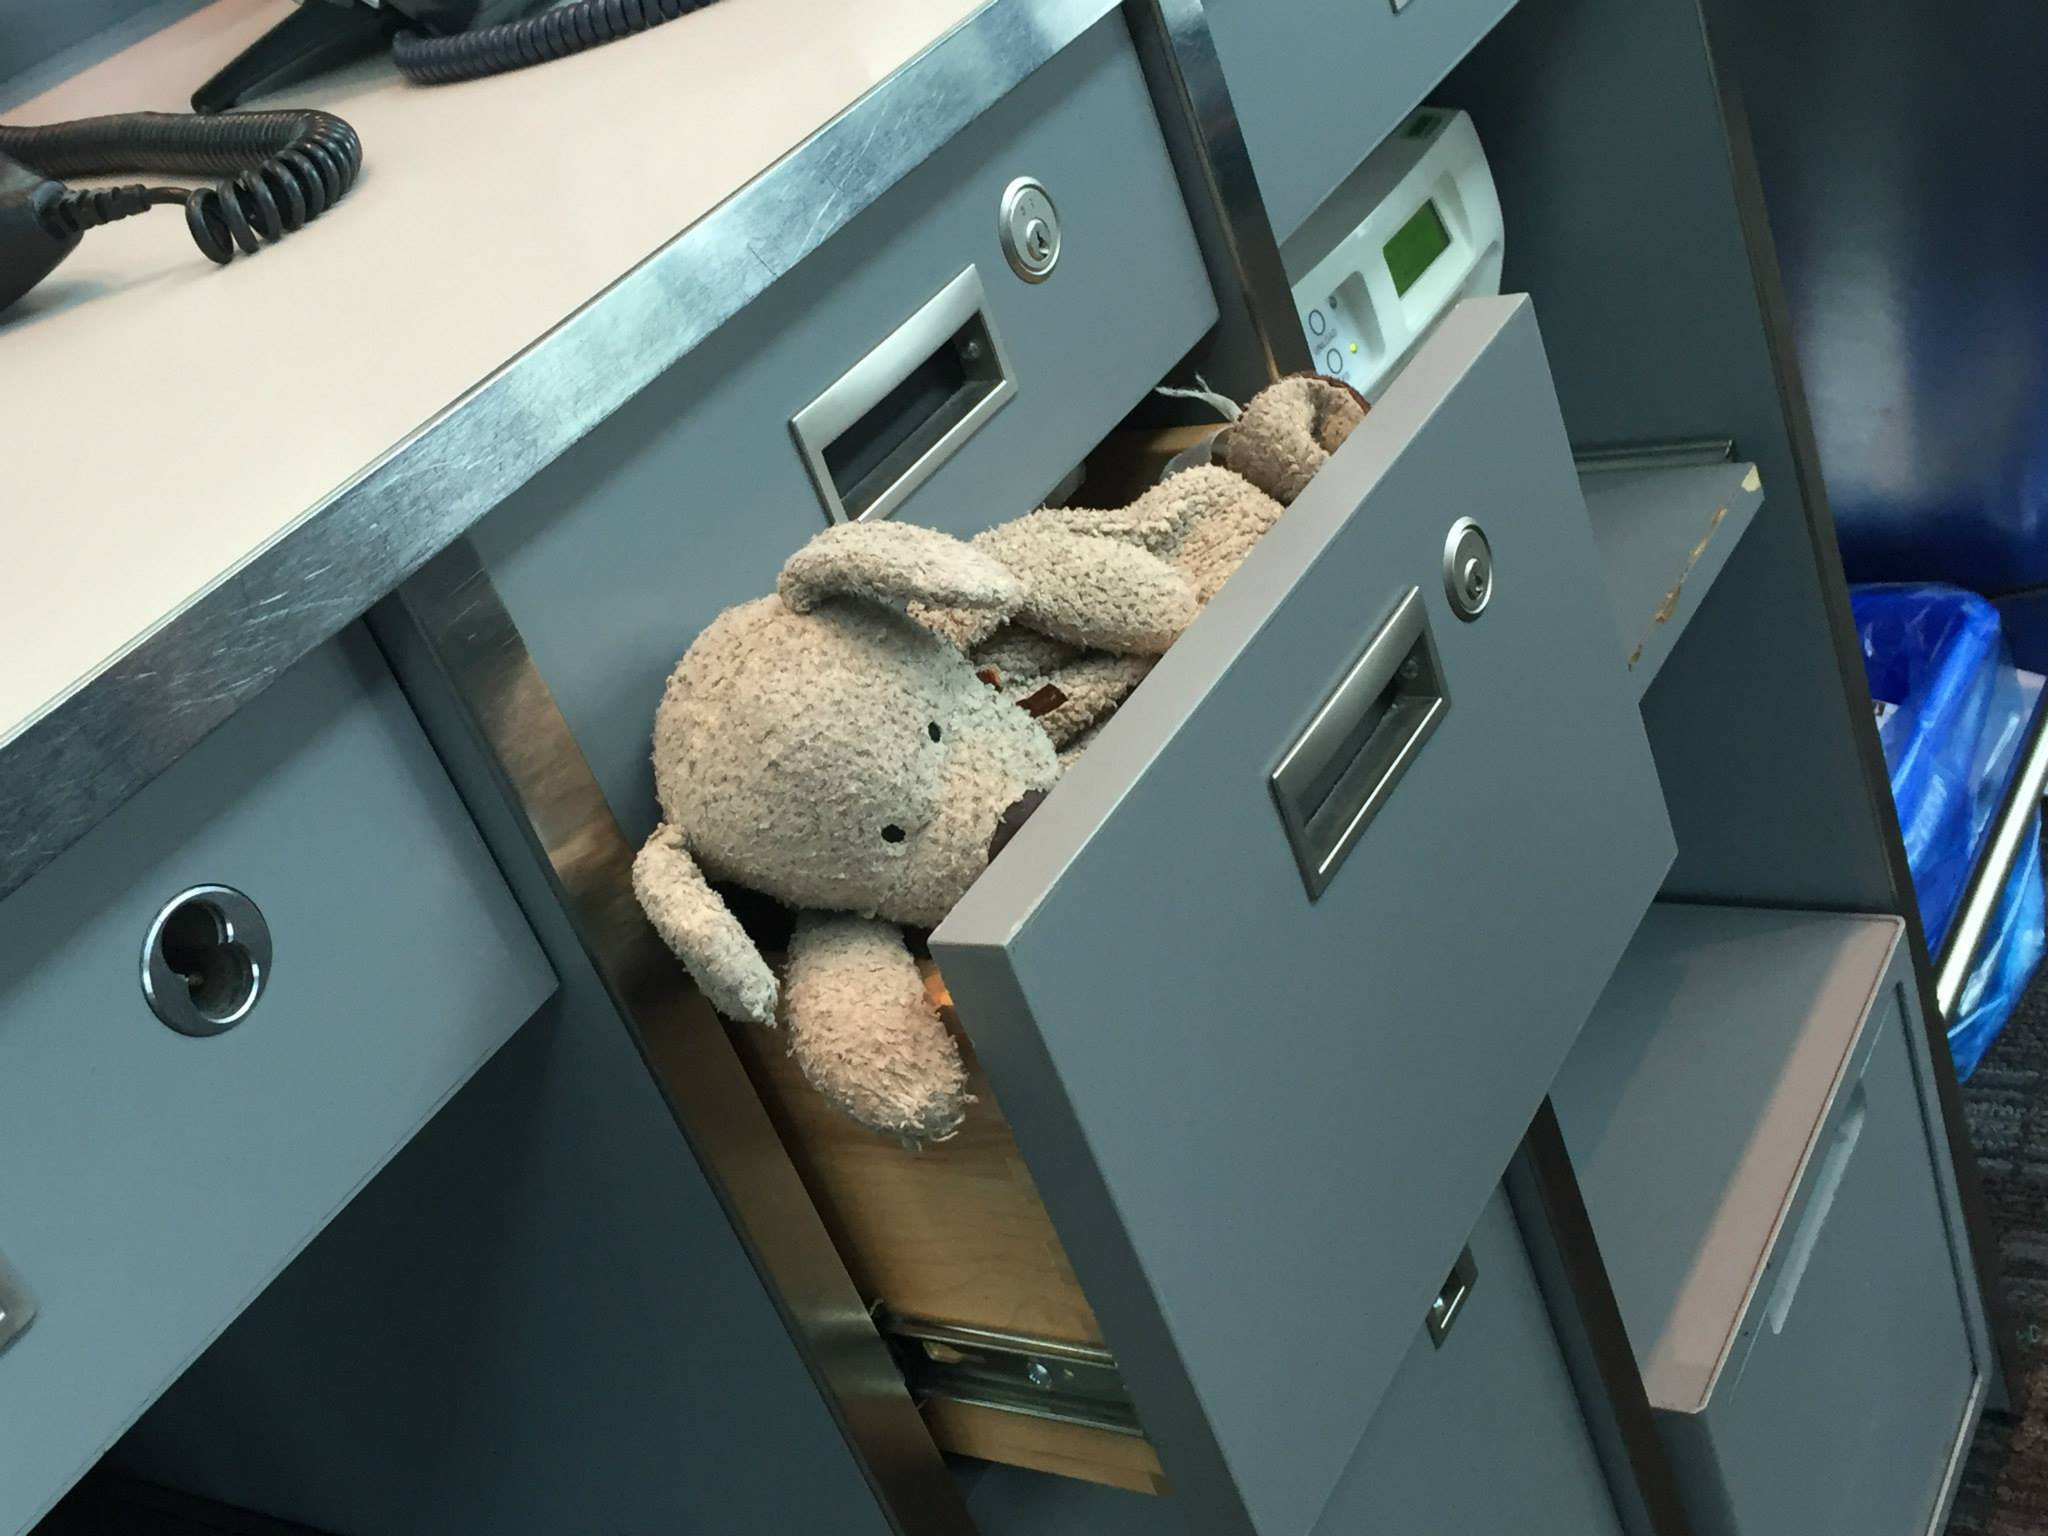 How RaRa the lost teddy bear found his way home